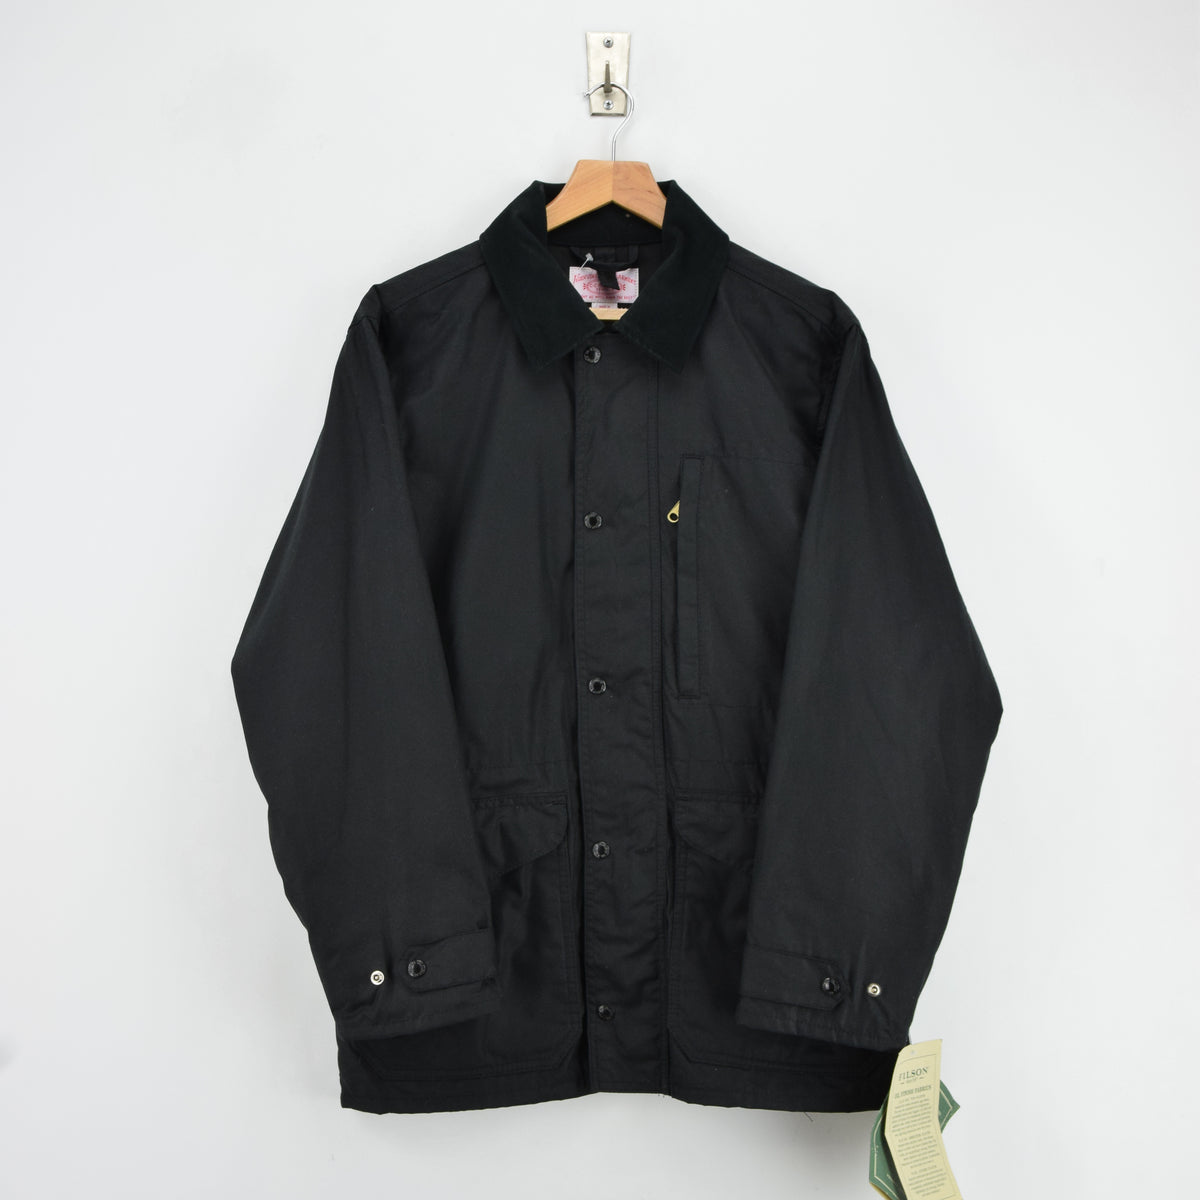 Filson Cover Cloth Mile Marker Coat Black Wax Cotton Jacket Made in USA M front